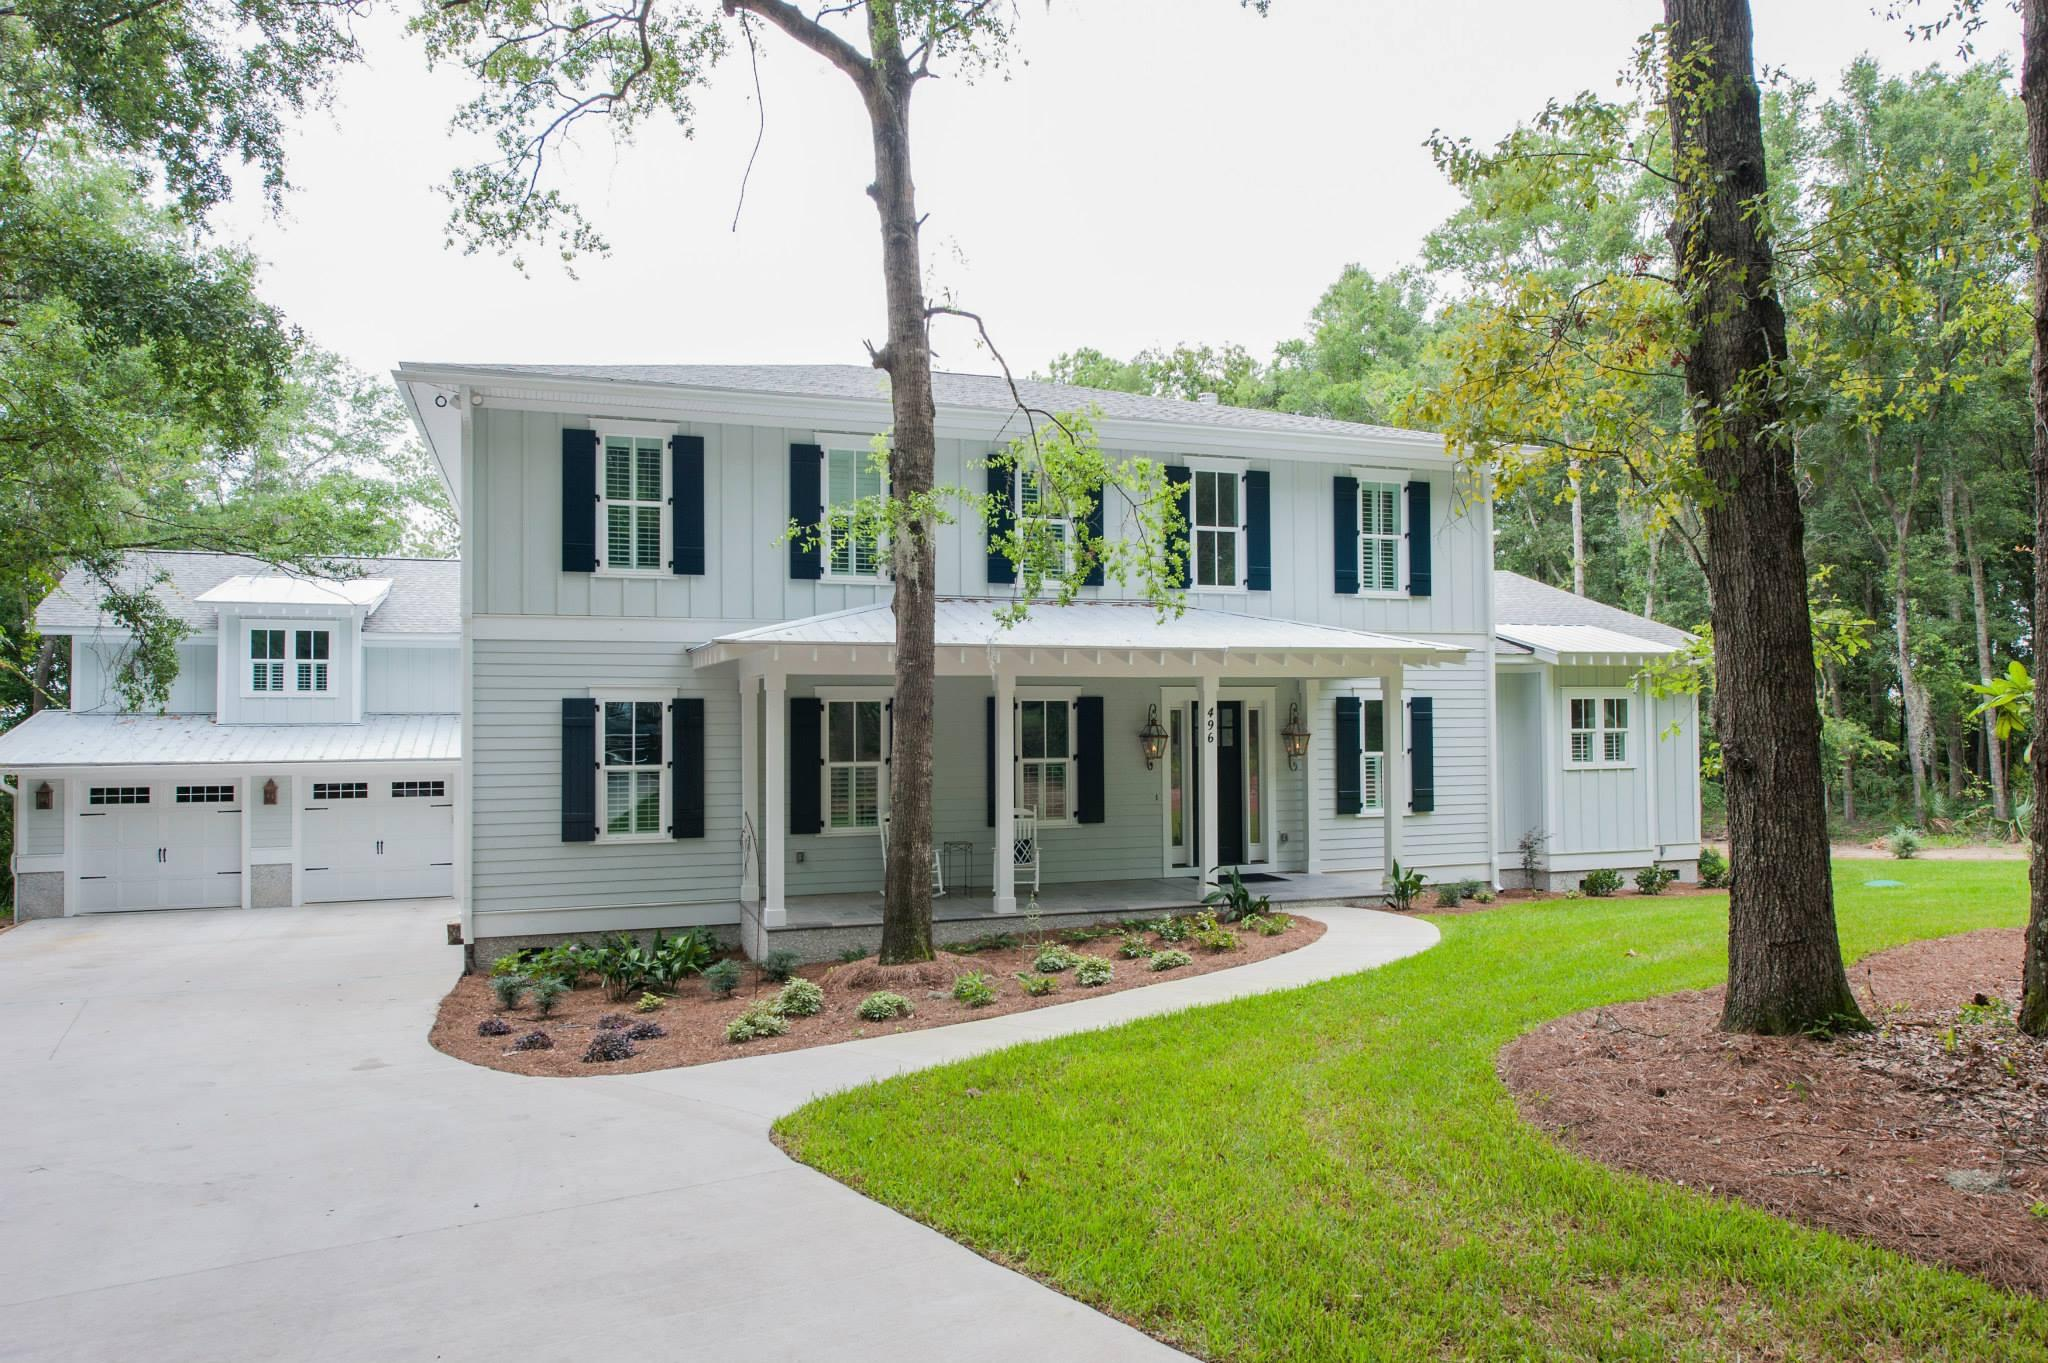 Yellow House Place Homes For Sale - 496 Yellow House, Wando, SC - 5